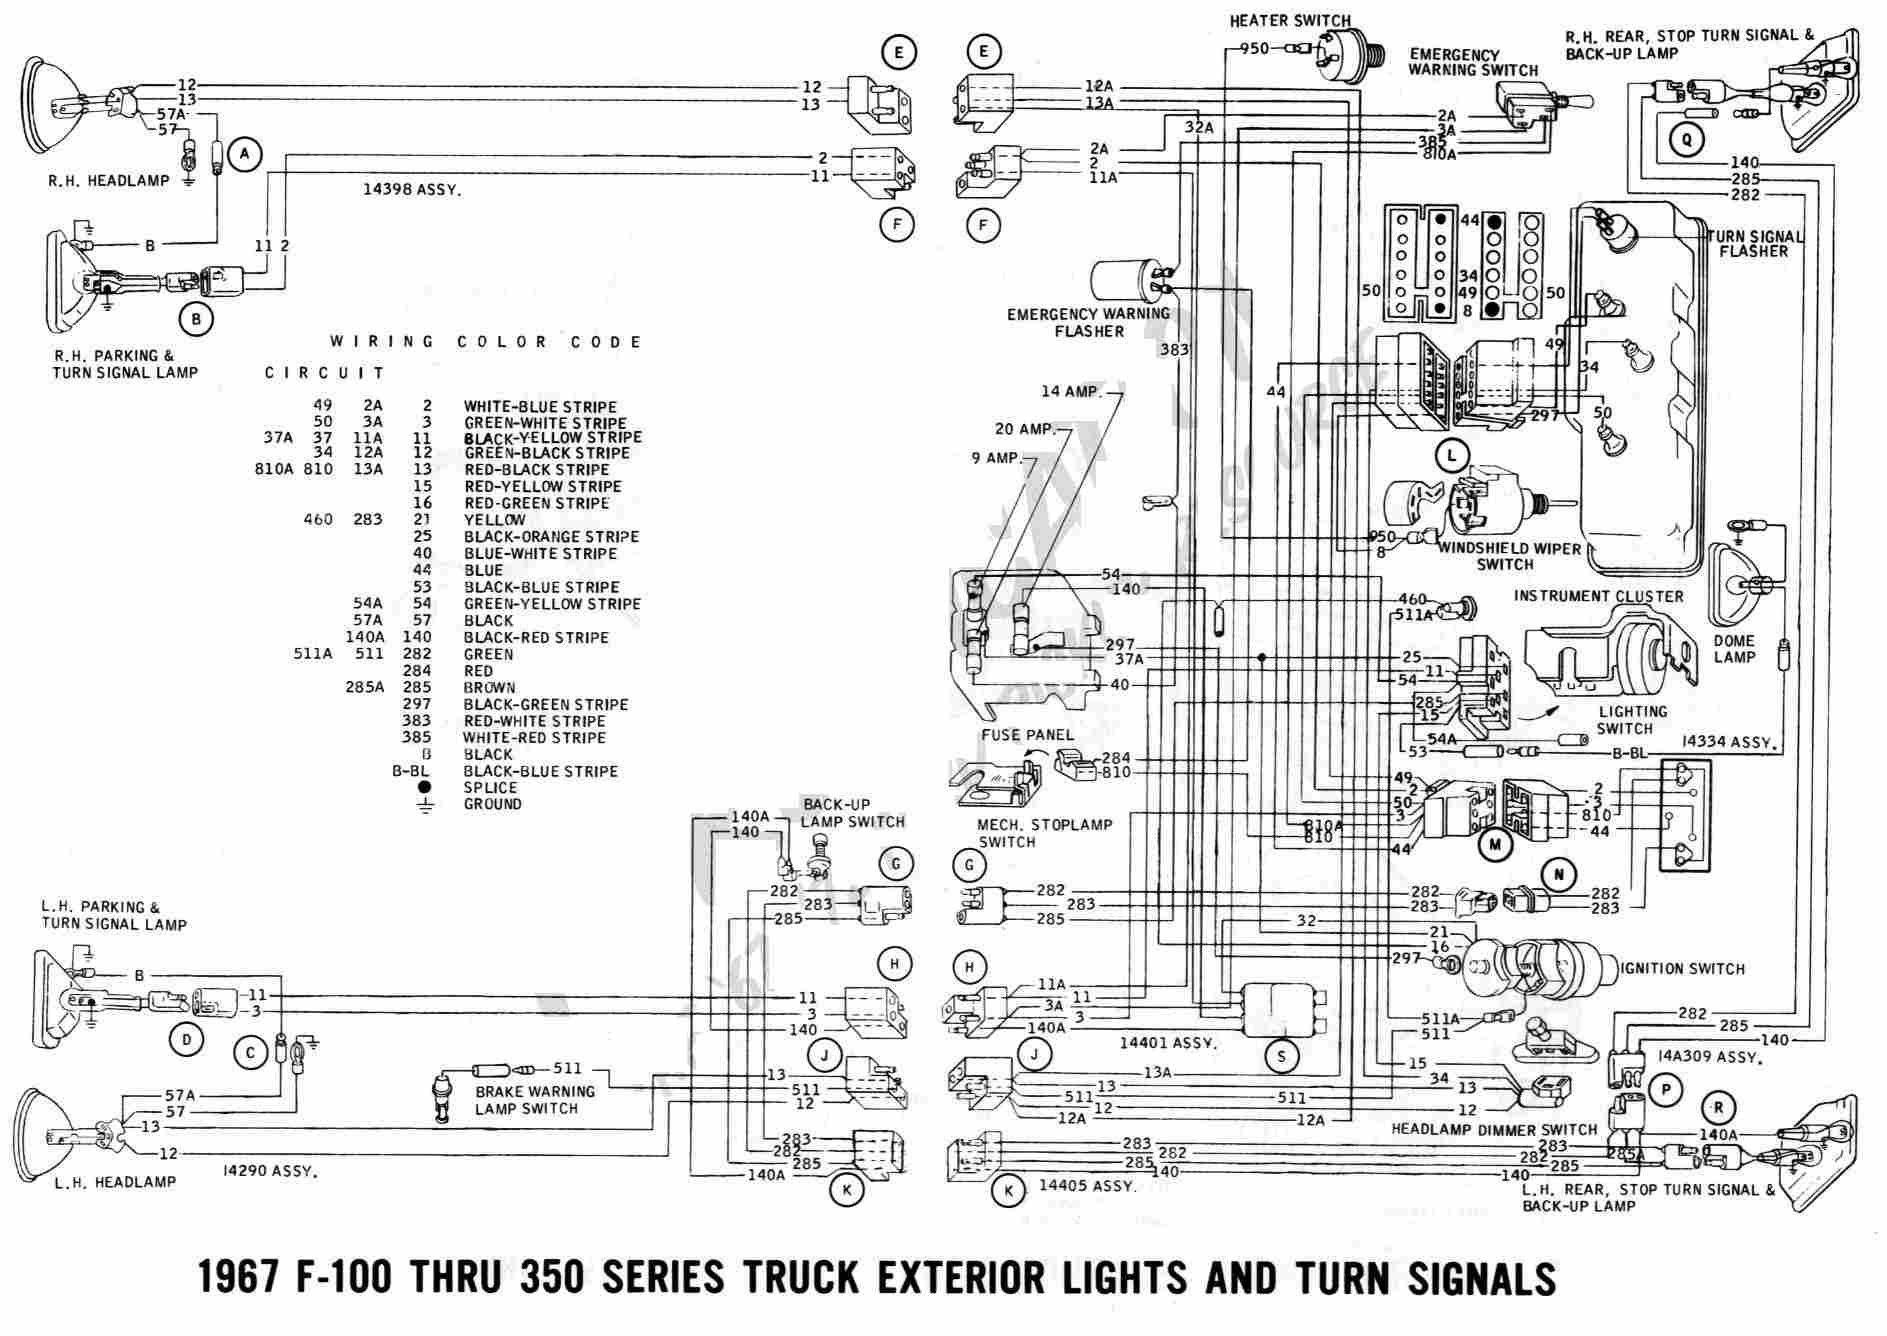 ford edge wiring diagram Collection-2007 ford Edge Wiring Diagram Awesome 1969 ford F 350 Wiring Schematic Free Wiring Diagrams 11-g